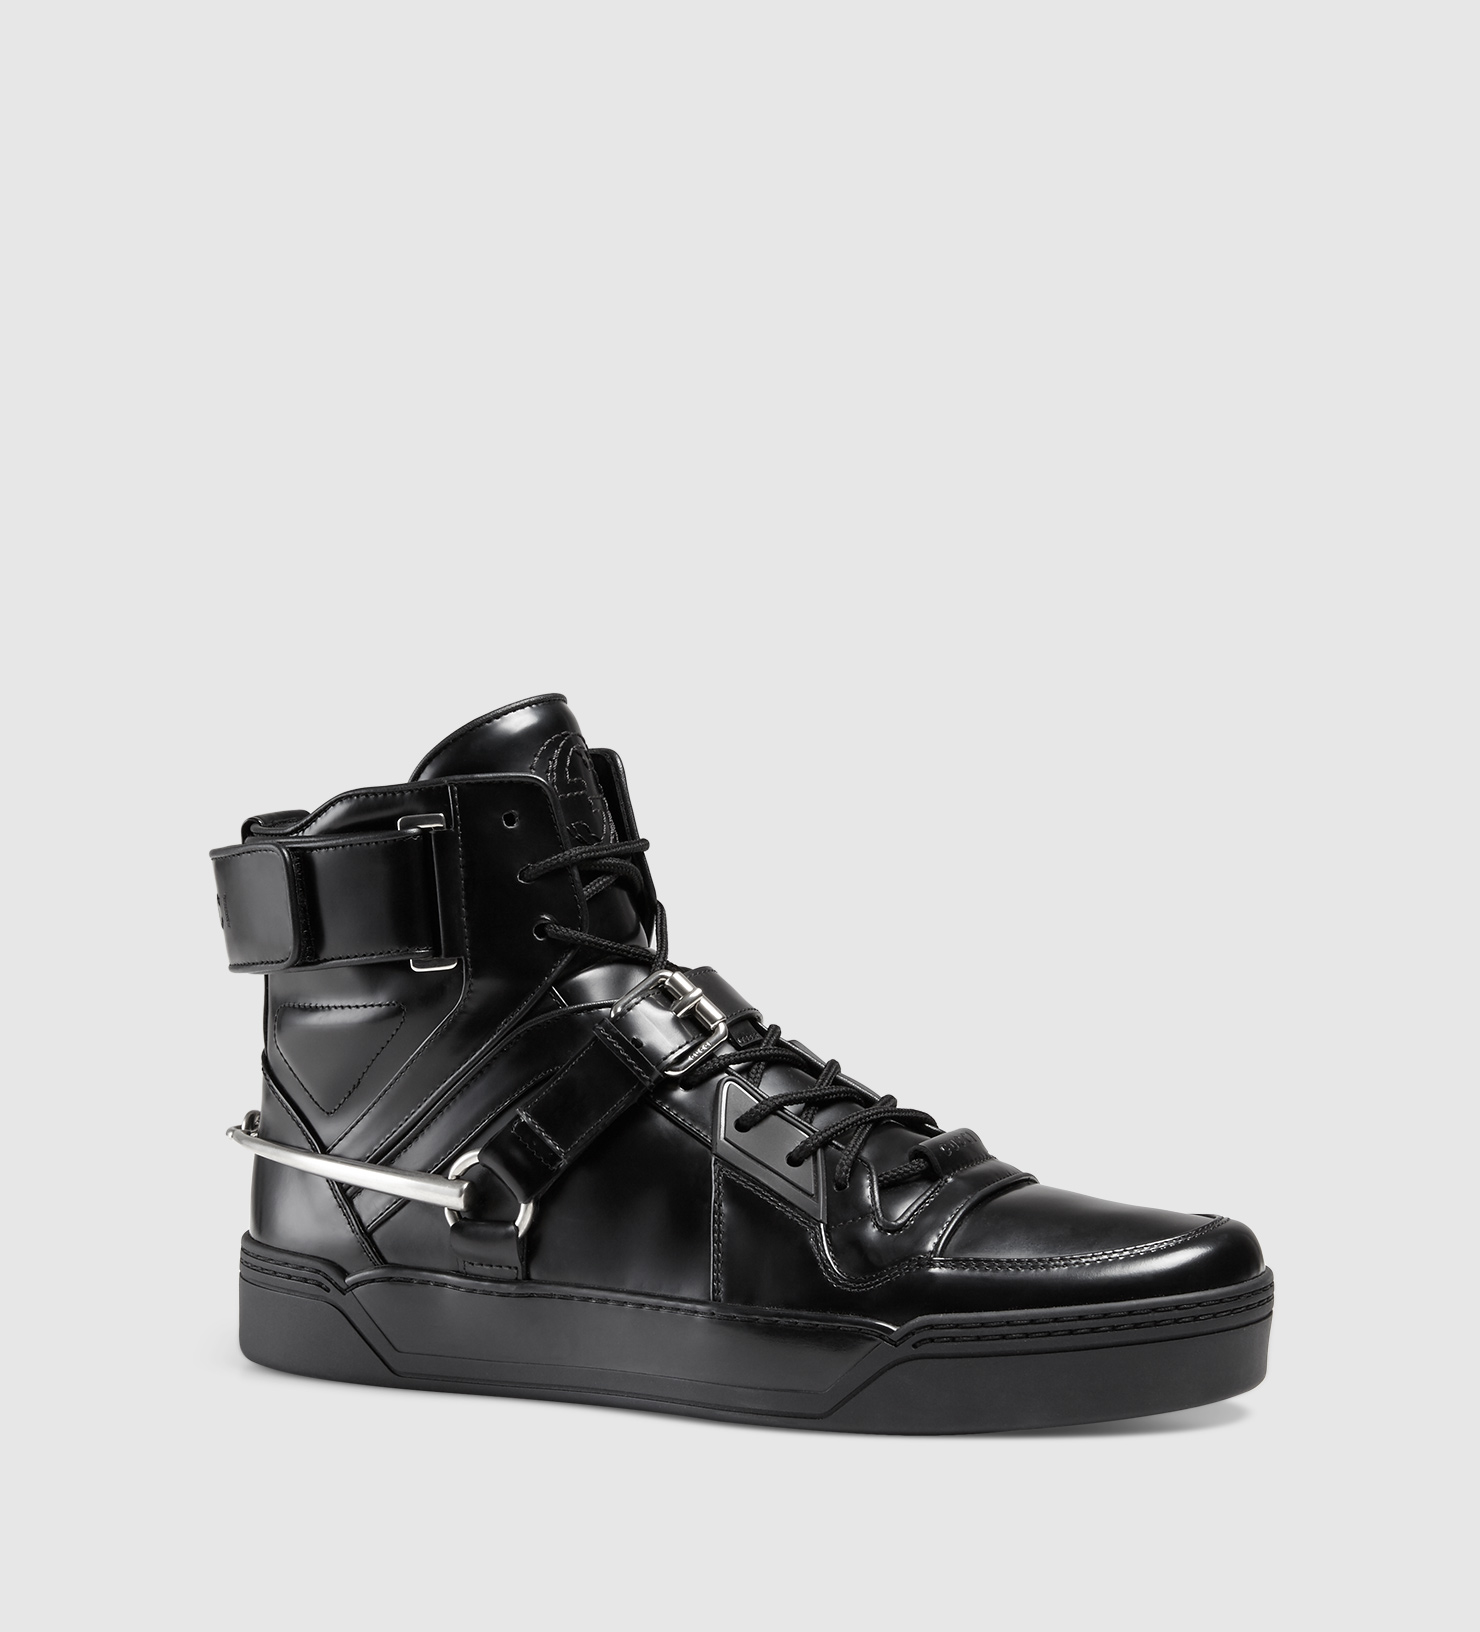 Gucci Leather Sneaker With Horsebit In Black For Men Lyst